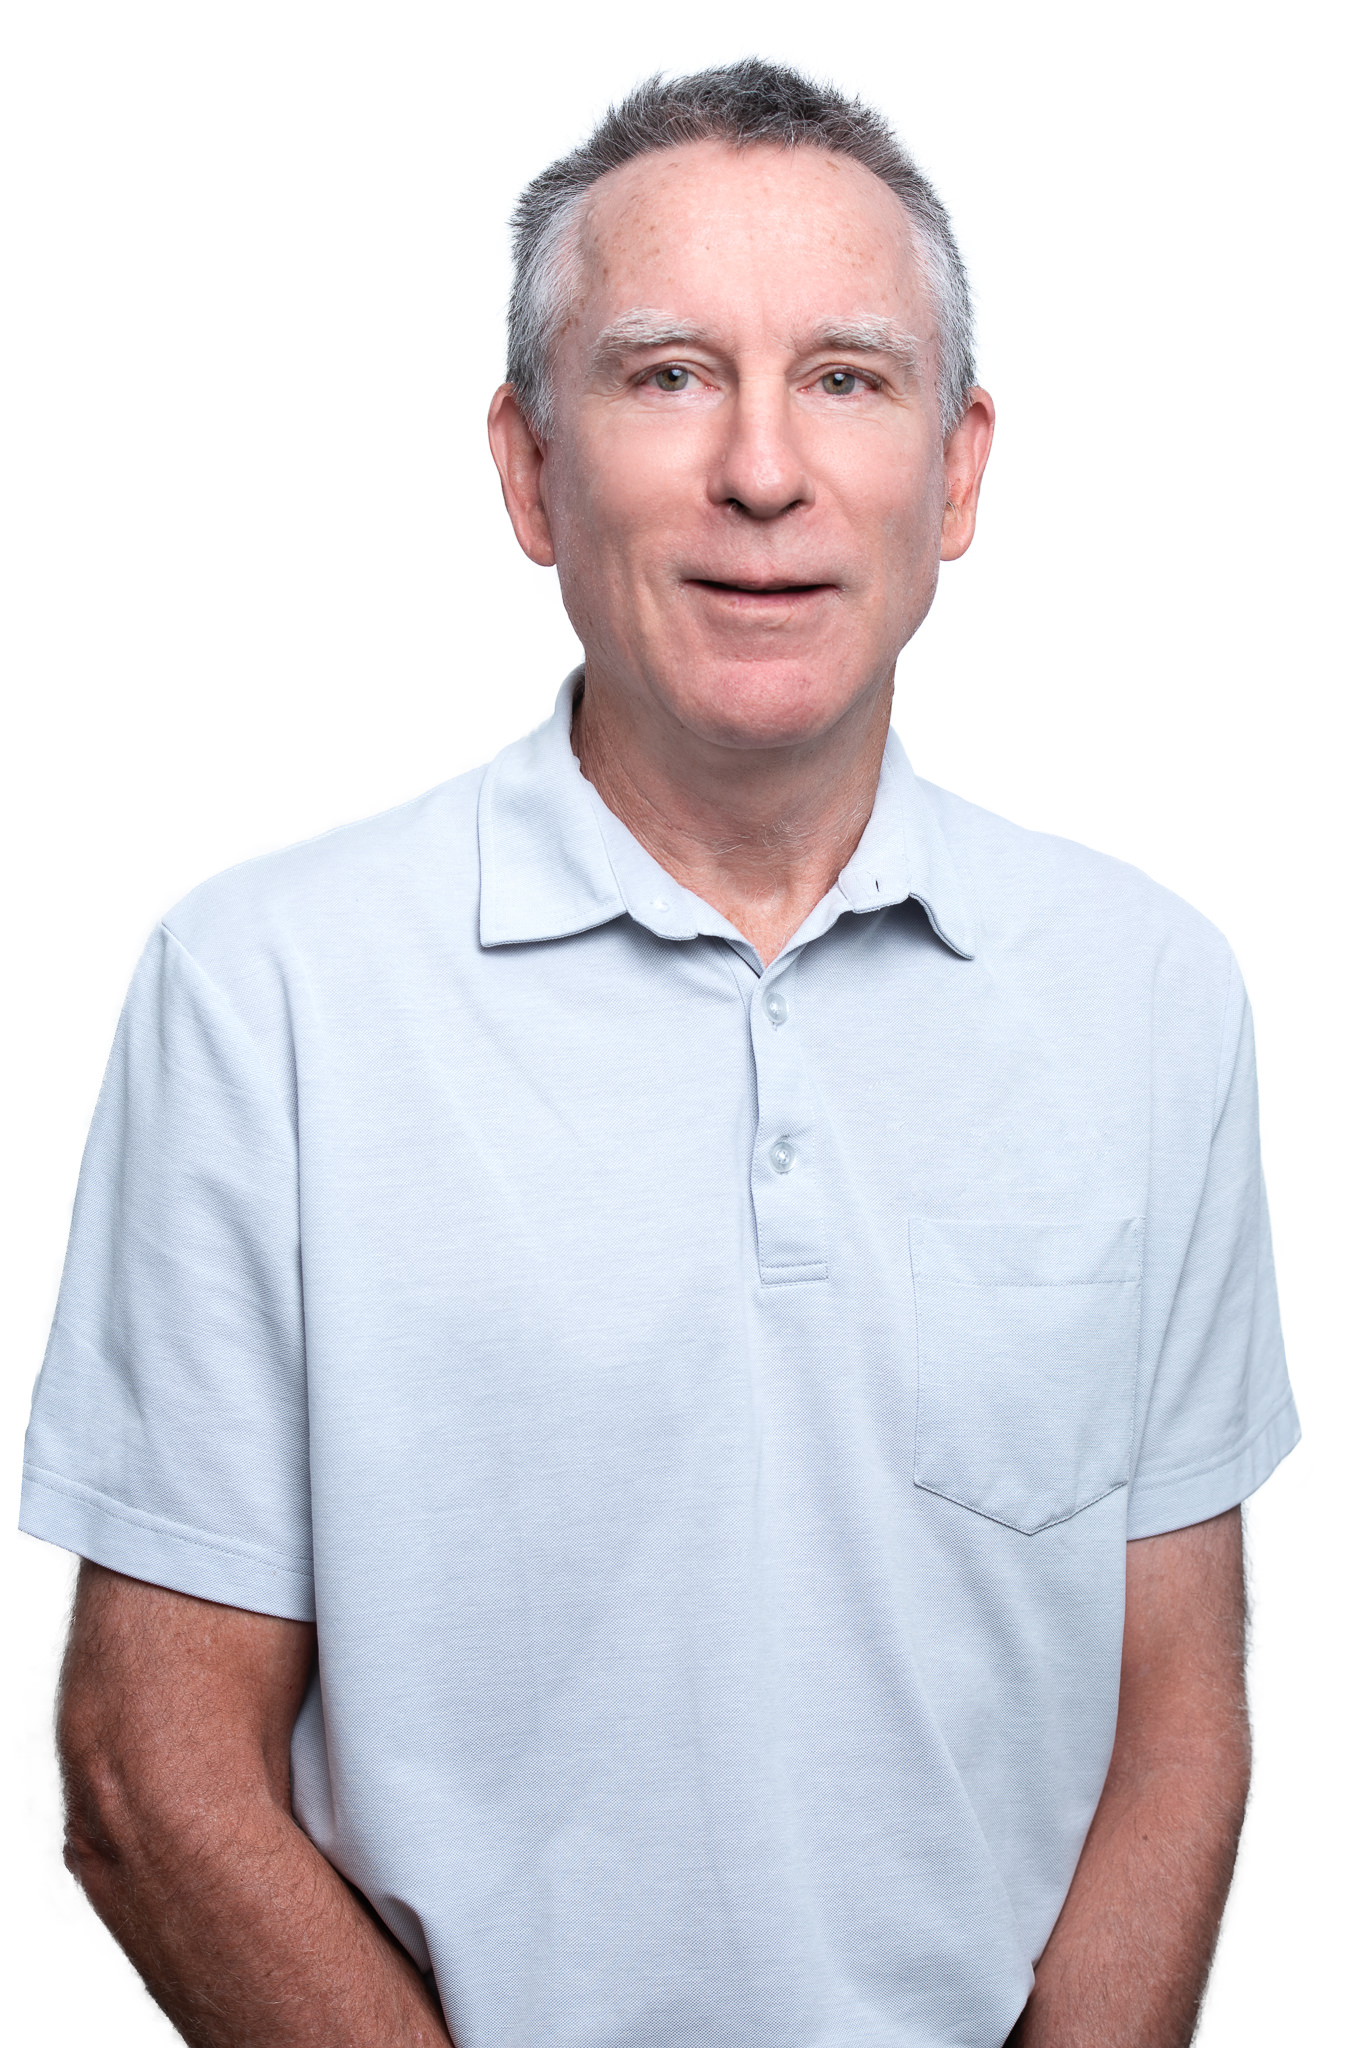 Dr. Andrew Murray